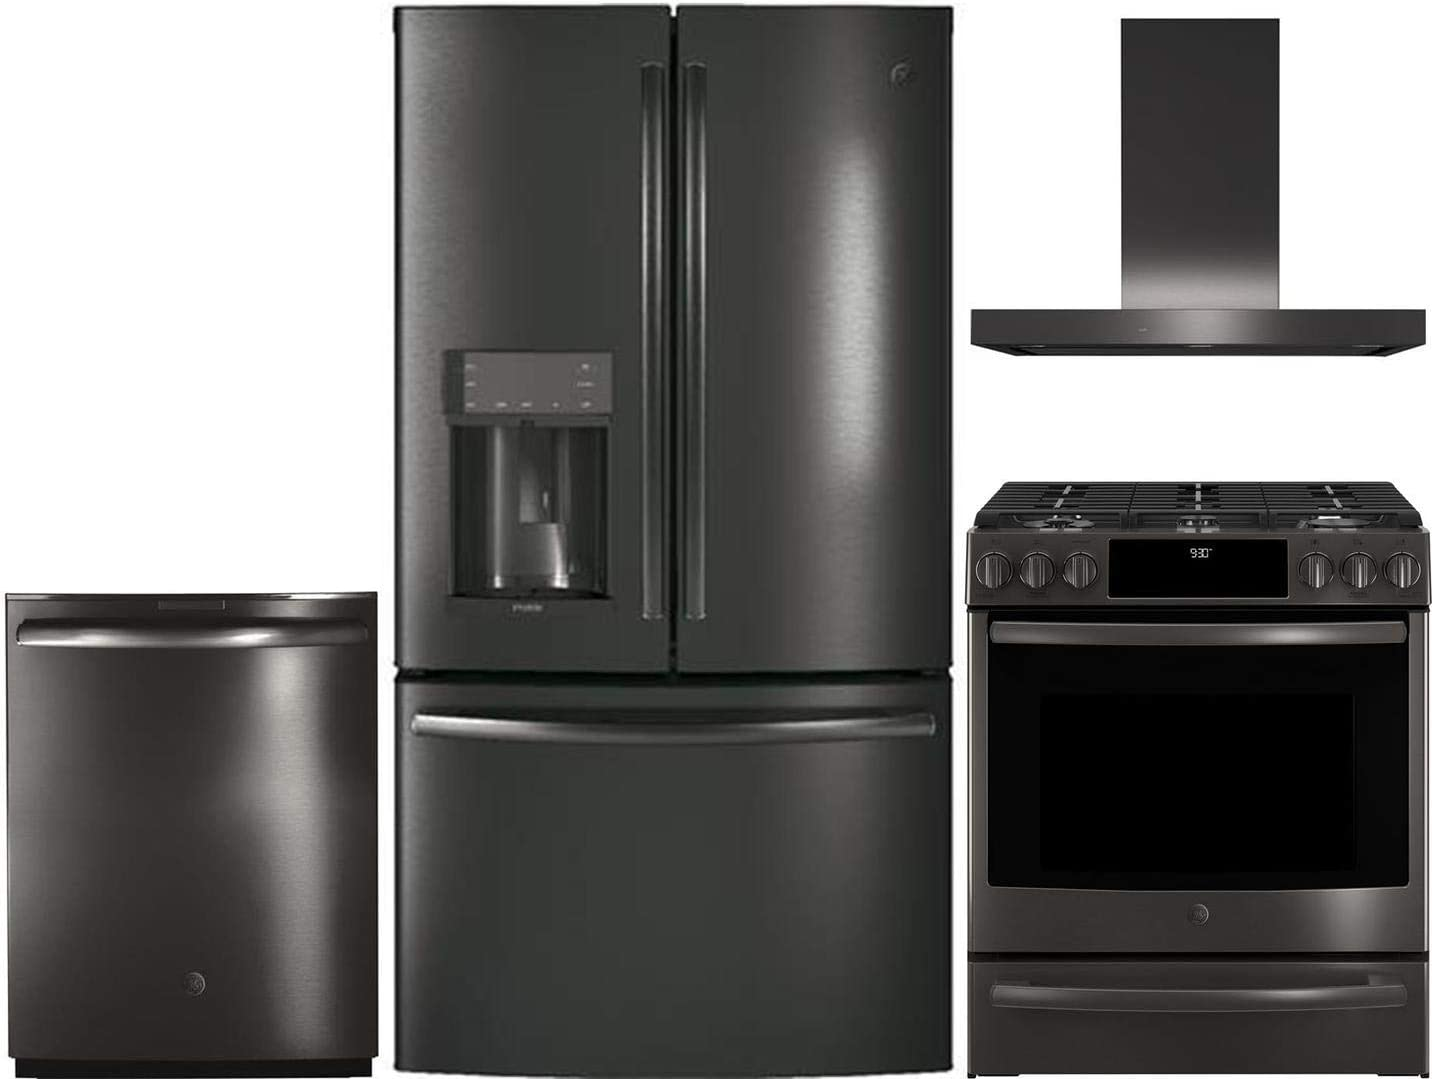 Buy Ge Profile 4 Piece Kitchen Appliance Package With Pfe28kblts 36 French Door Refrigerator Pgs930belts 30 Slide In Gas Range Uvw9361blts 36 Hood And Built In Dishwasher In Black Stainless Steel Online In Turkey B07rn2xn2b